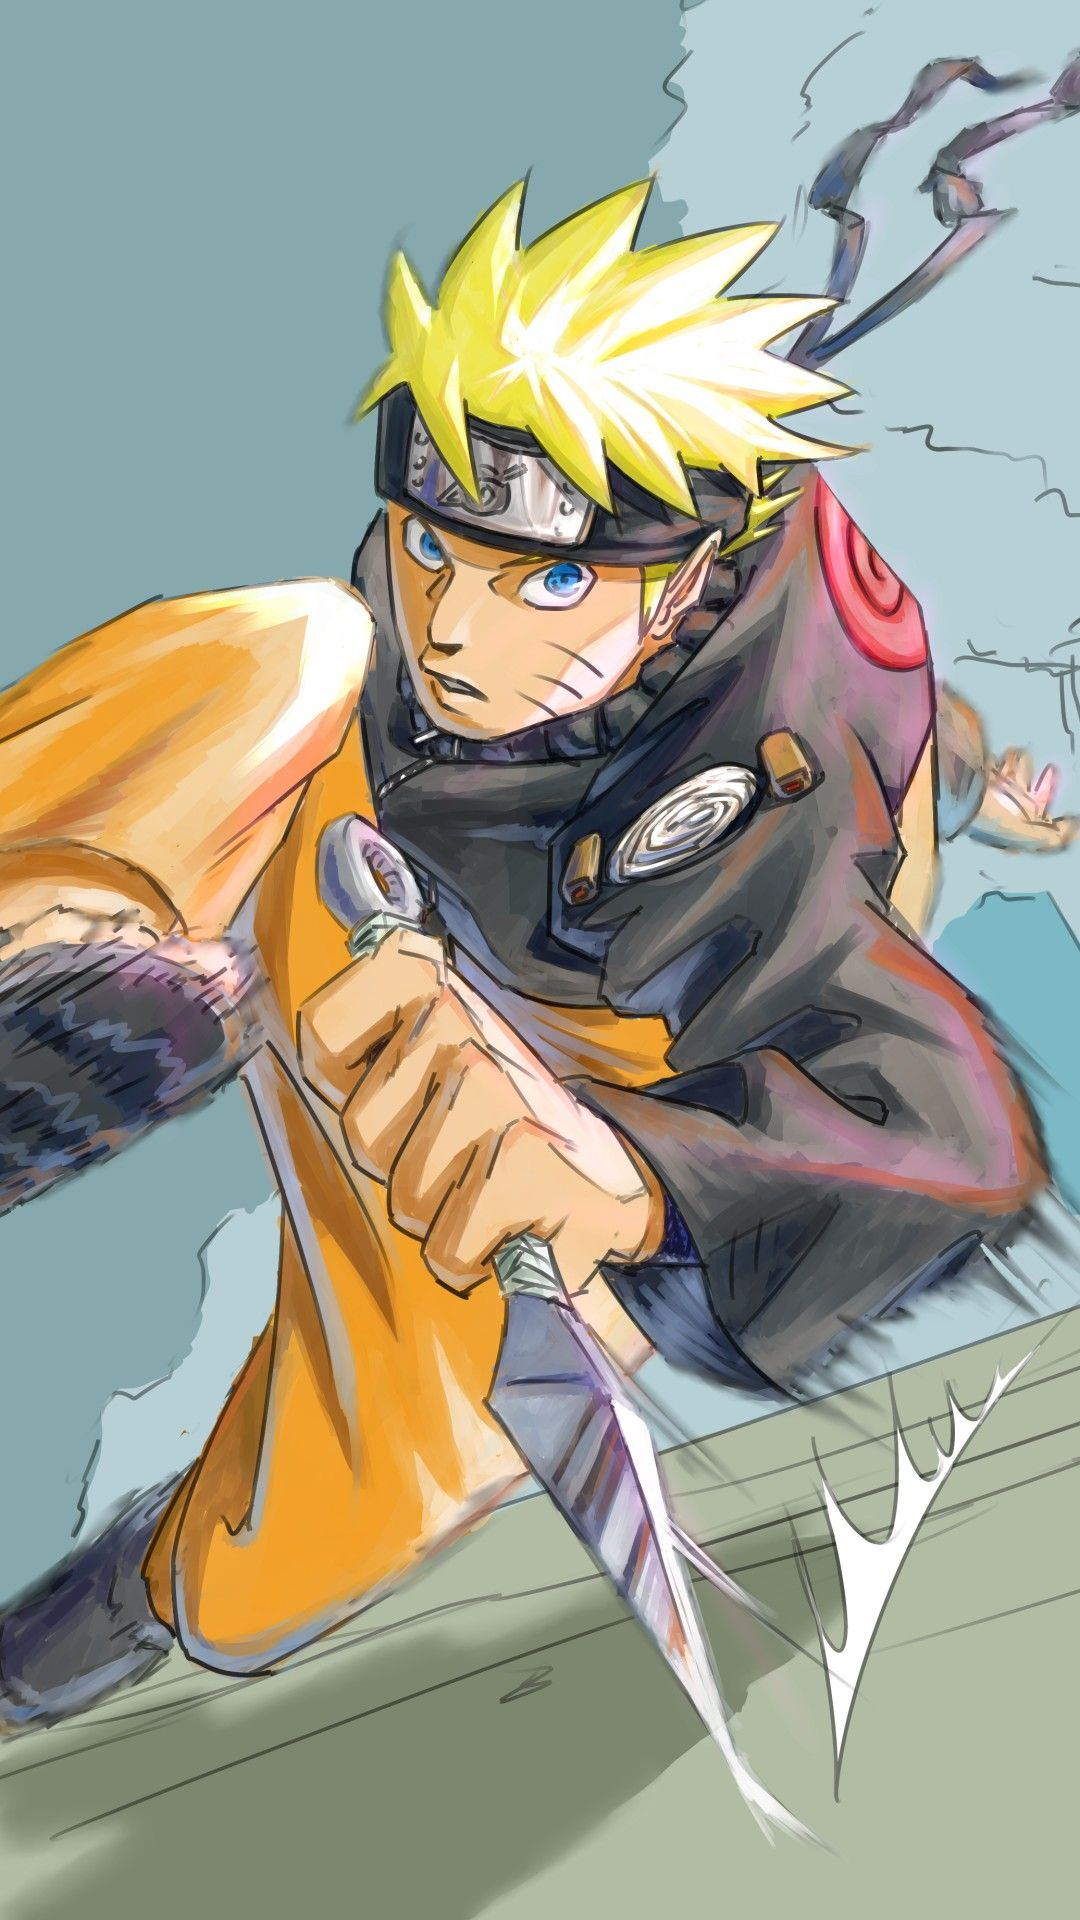 Wallpaper Phone Naruto Full Hd With Images Kawaii Anime